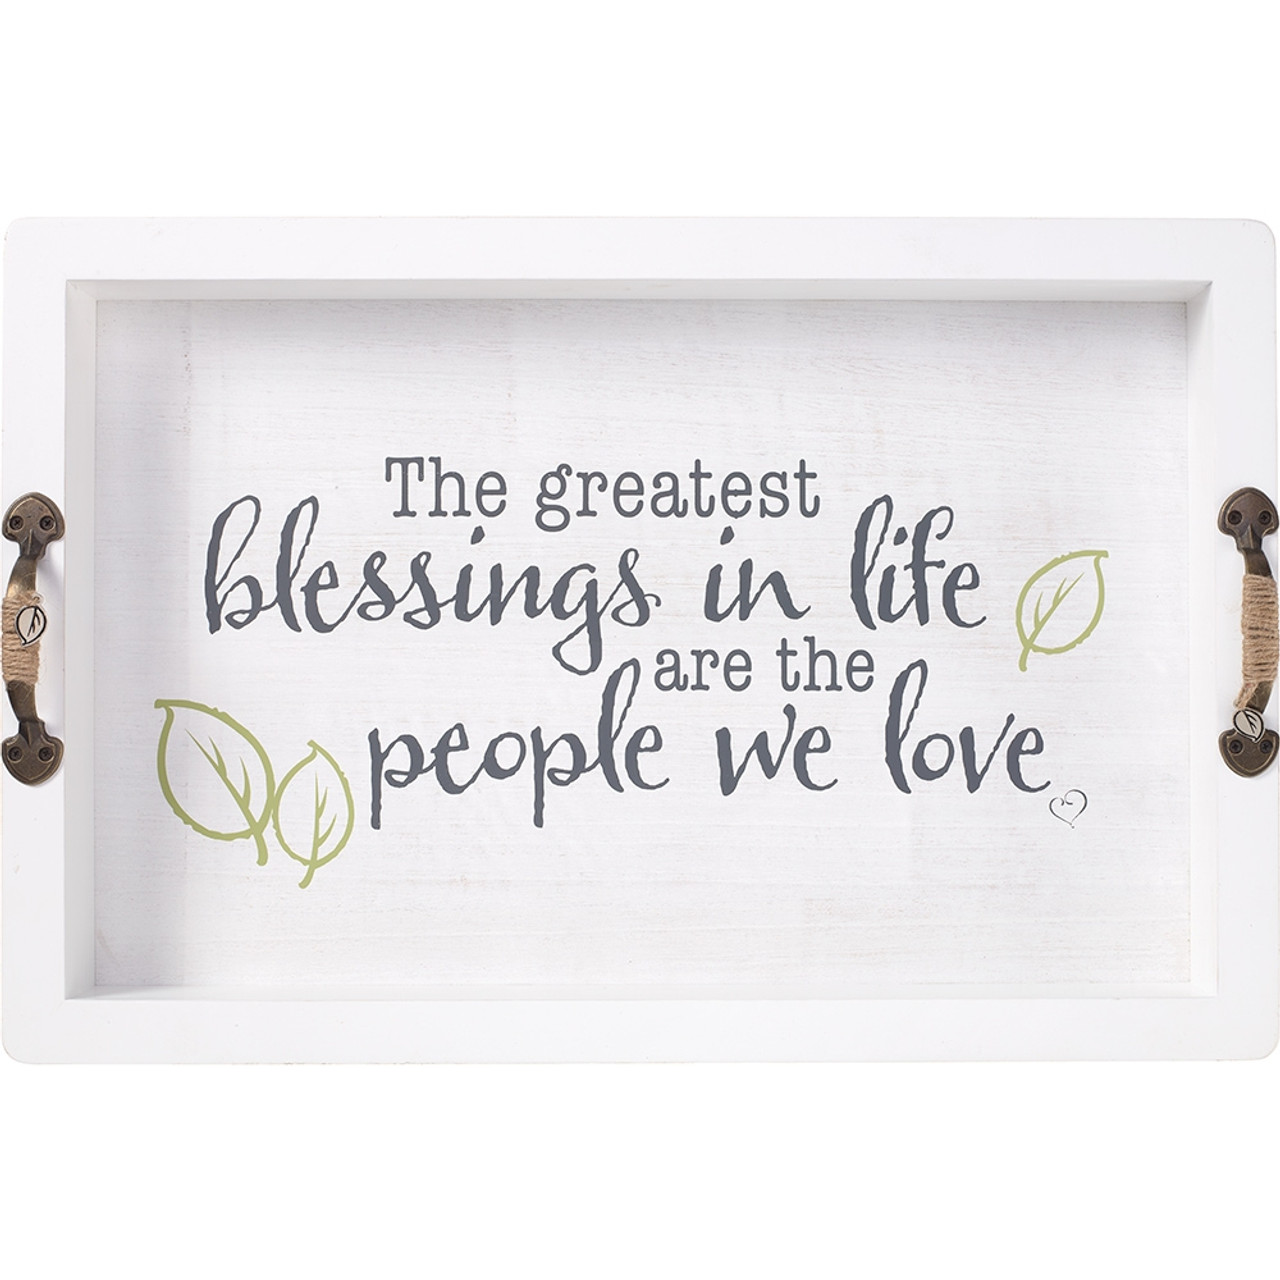 Wedding Gifts The Greatest Blessings Decorative Serving Tray Wood Metal 191418